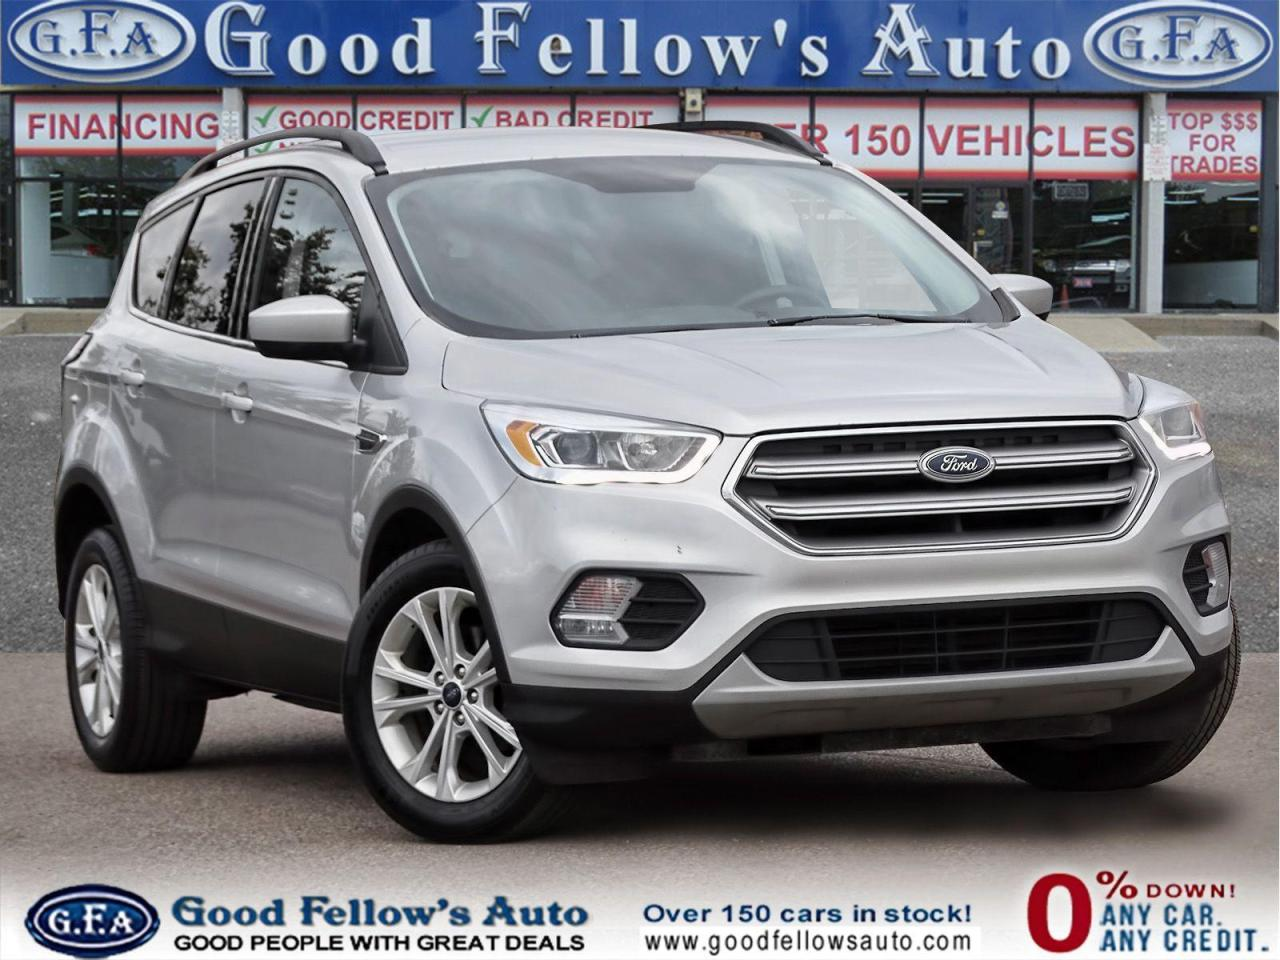 used 2017 Ford Escape car, priced at $11,300